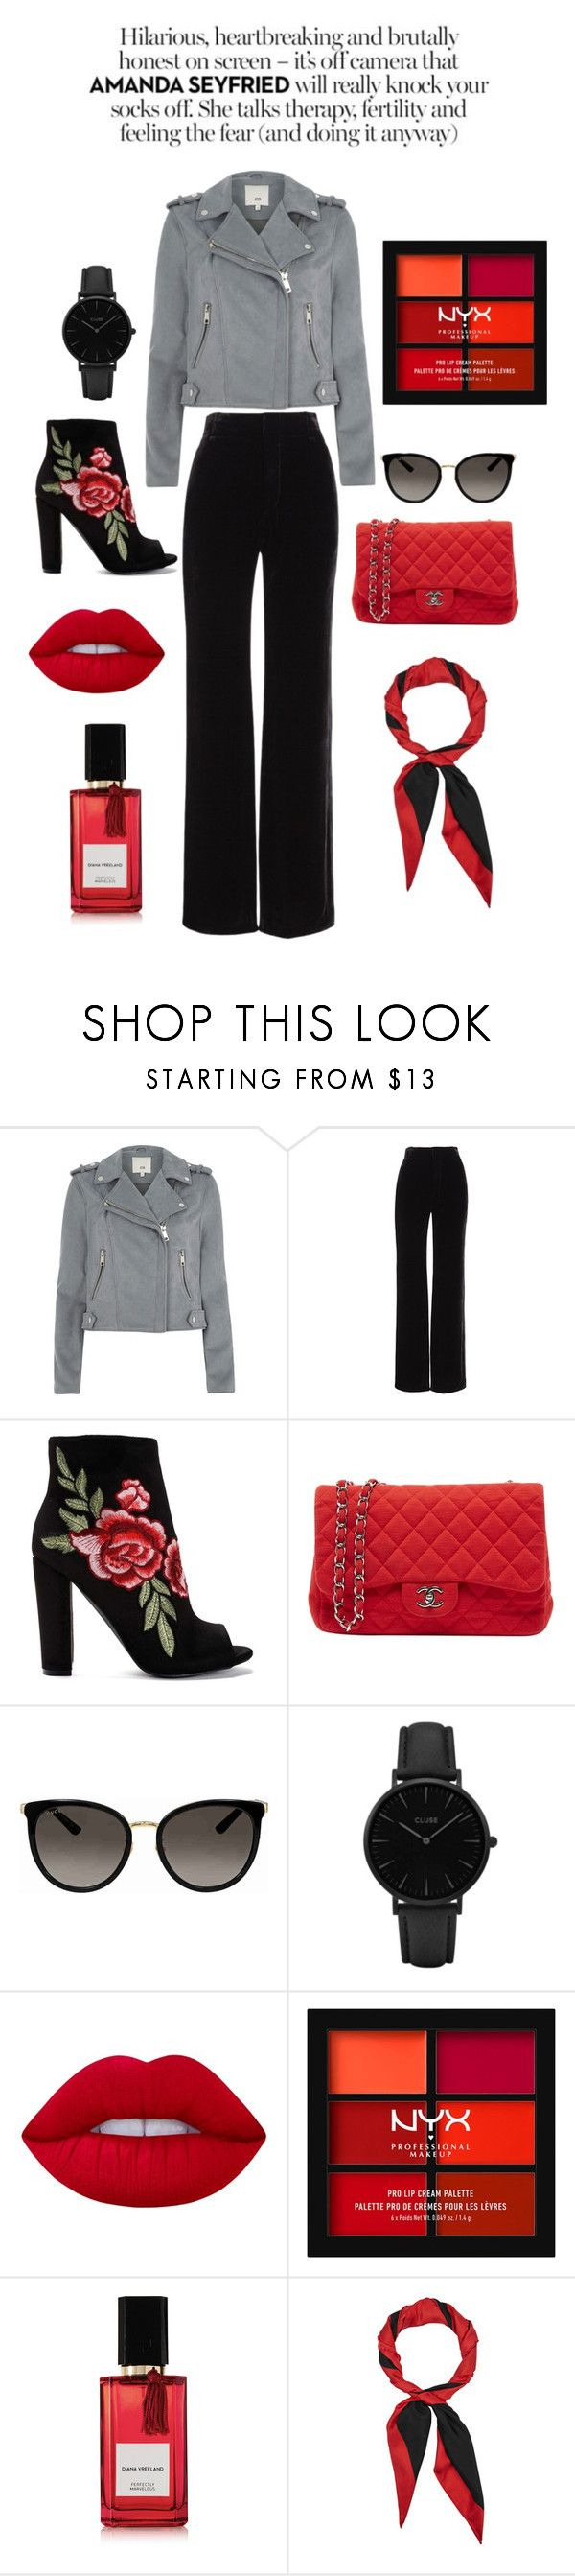 """red&black"" by lykke-medholdt ❤ liked on Polyvore featuring River Island, Vince, Chanel, Gucci, CLUSE, Lime Crime, NYX and Diana Vreeland Parfums"